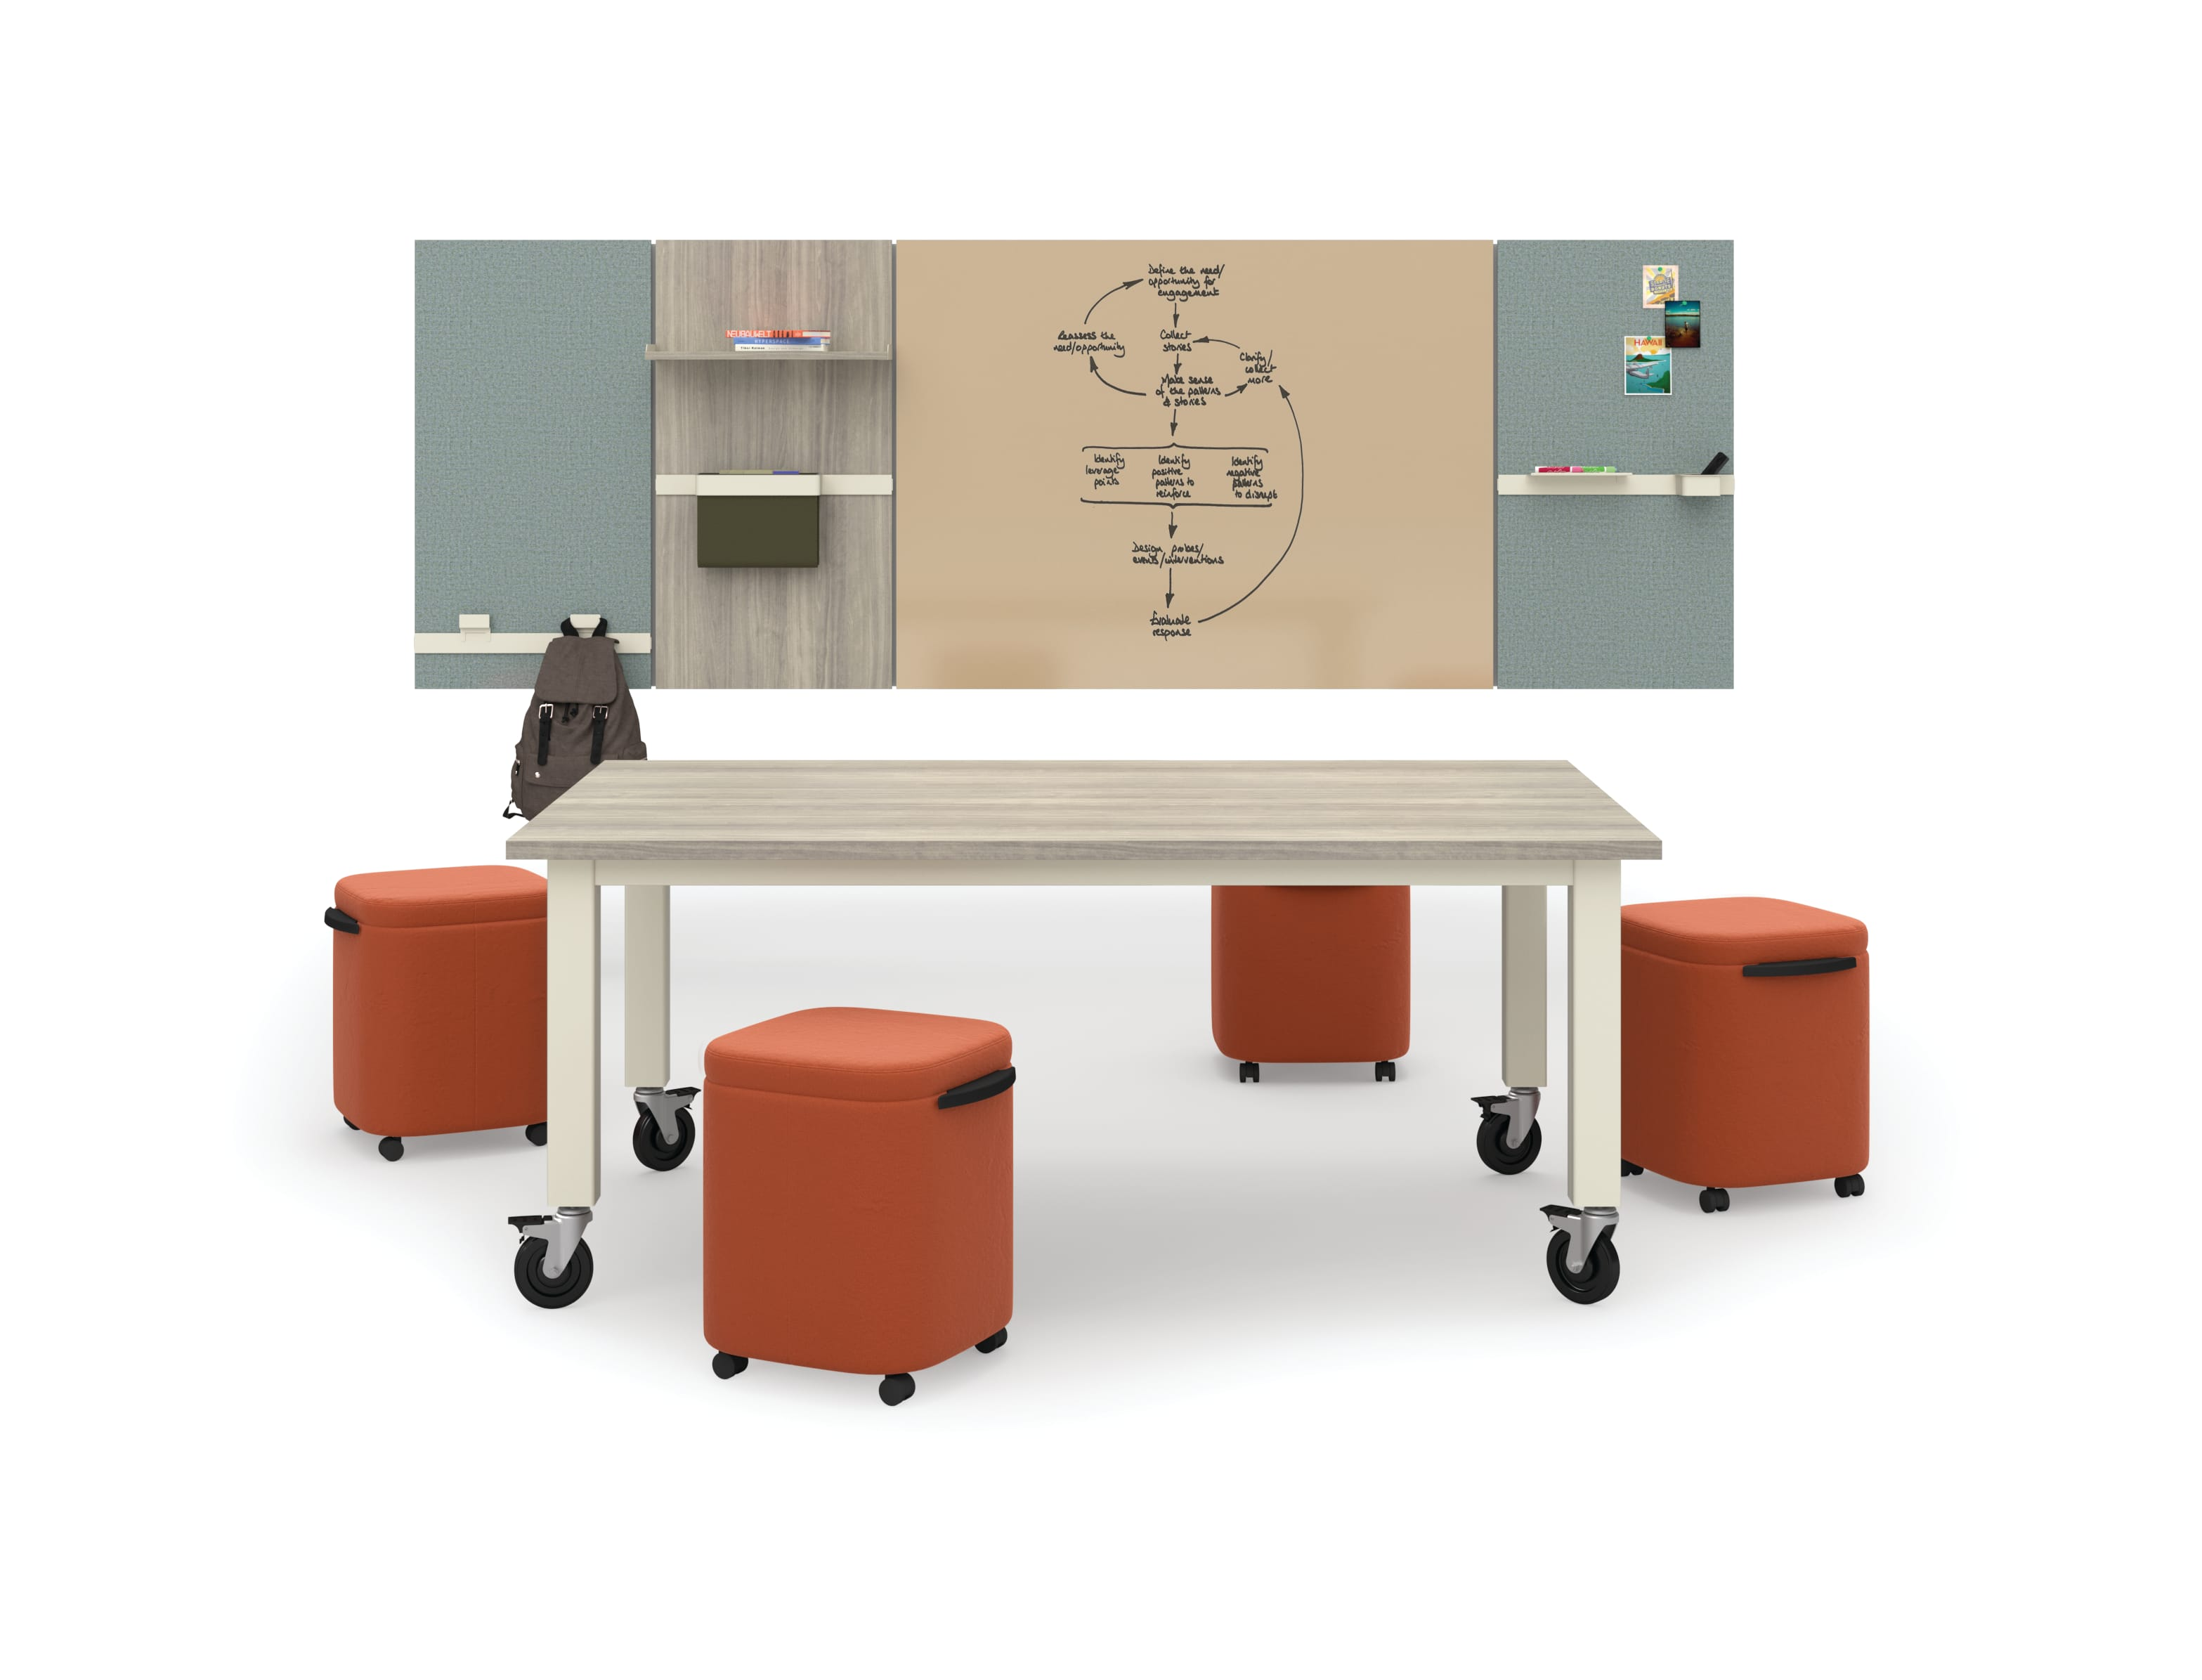 Preside Table with Astir poufs in open setting around Workwall tiles